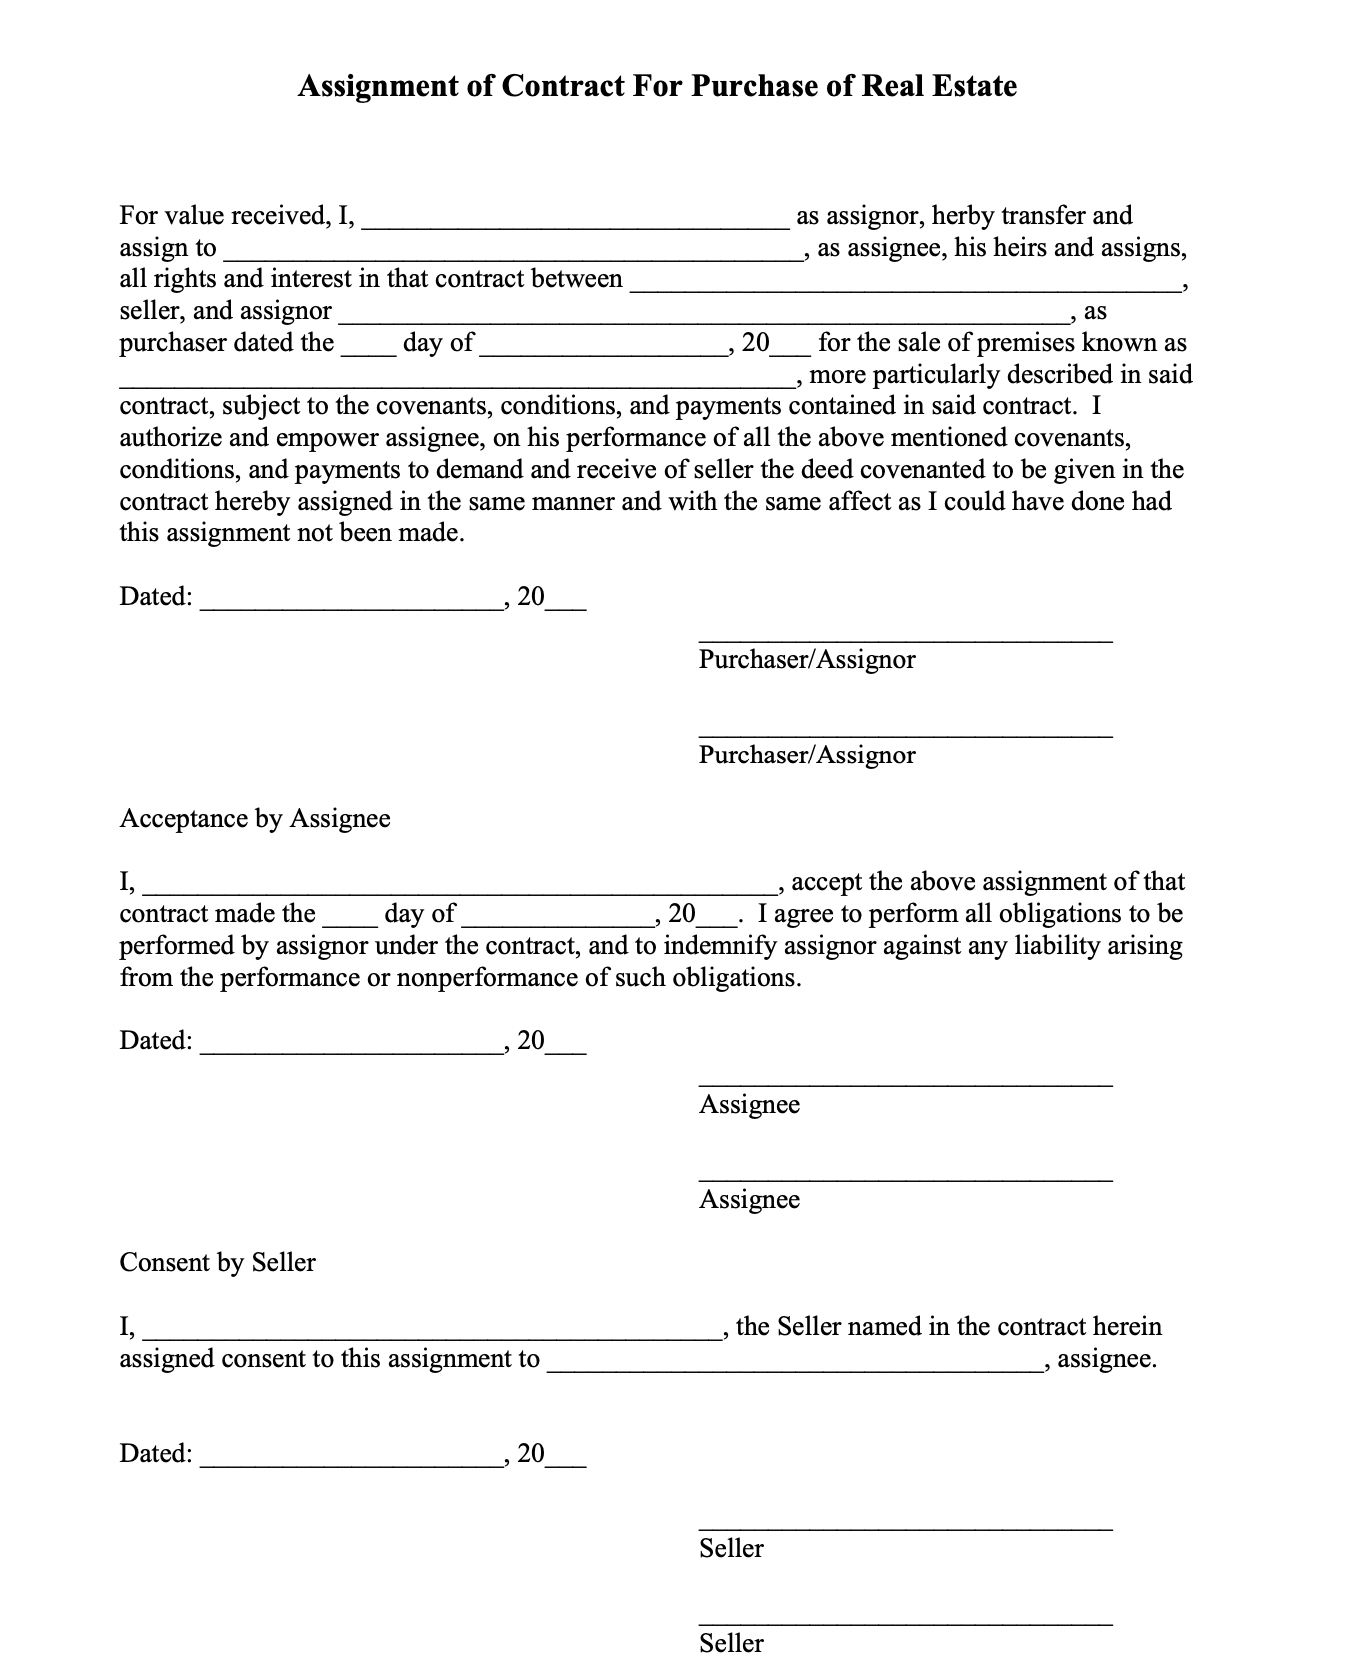 Tennessee real estate contract